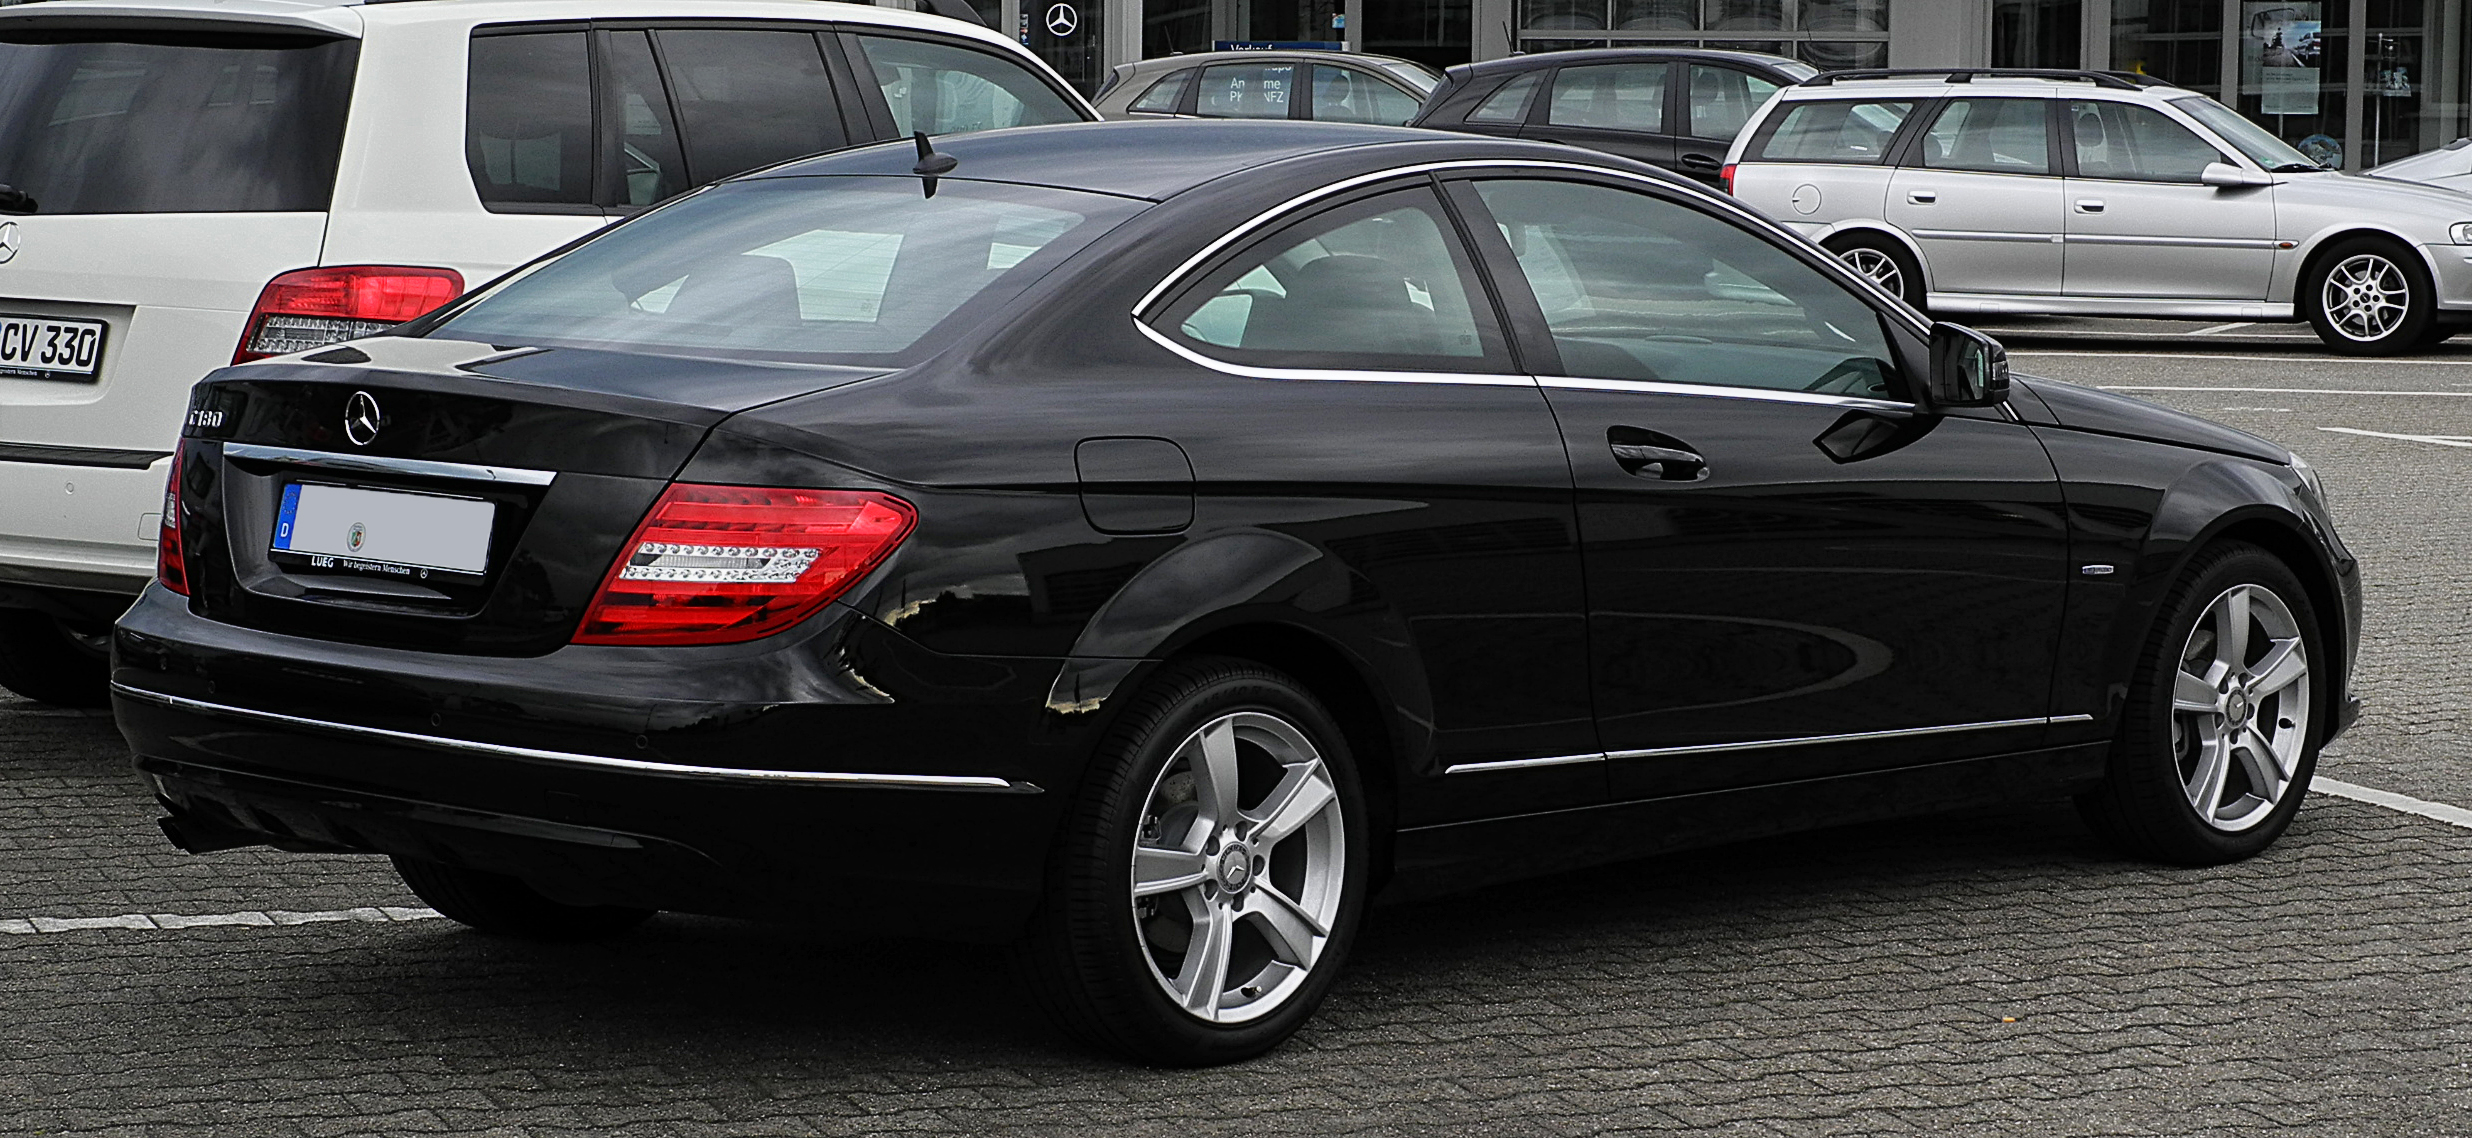 file mercedes benz c 180 blueefficiency coup c 204 heckansicht 10 juli 2011. Black Bedroom Furniture Sets. Home Design Ideas